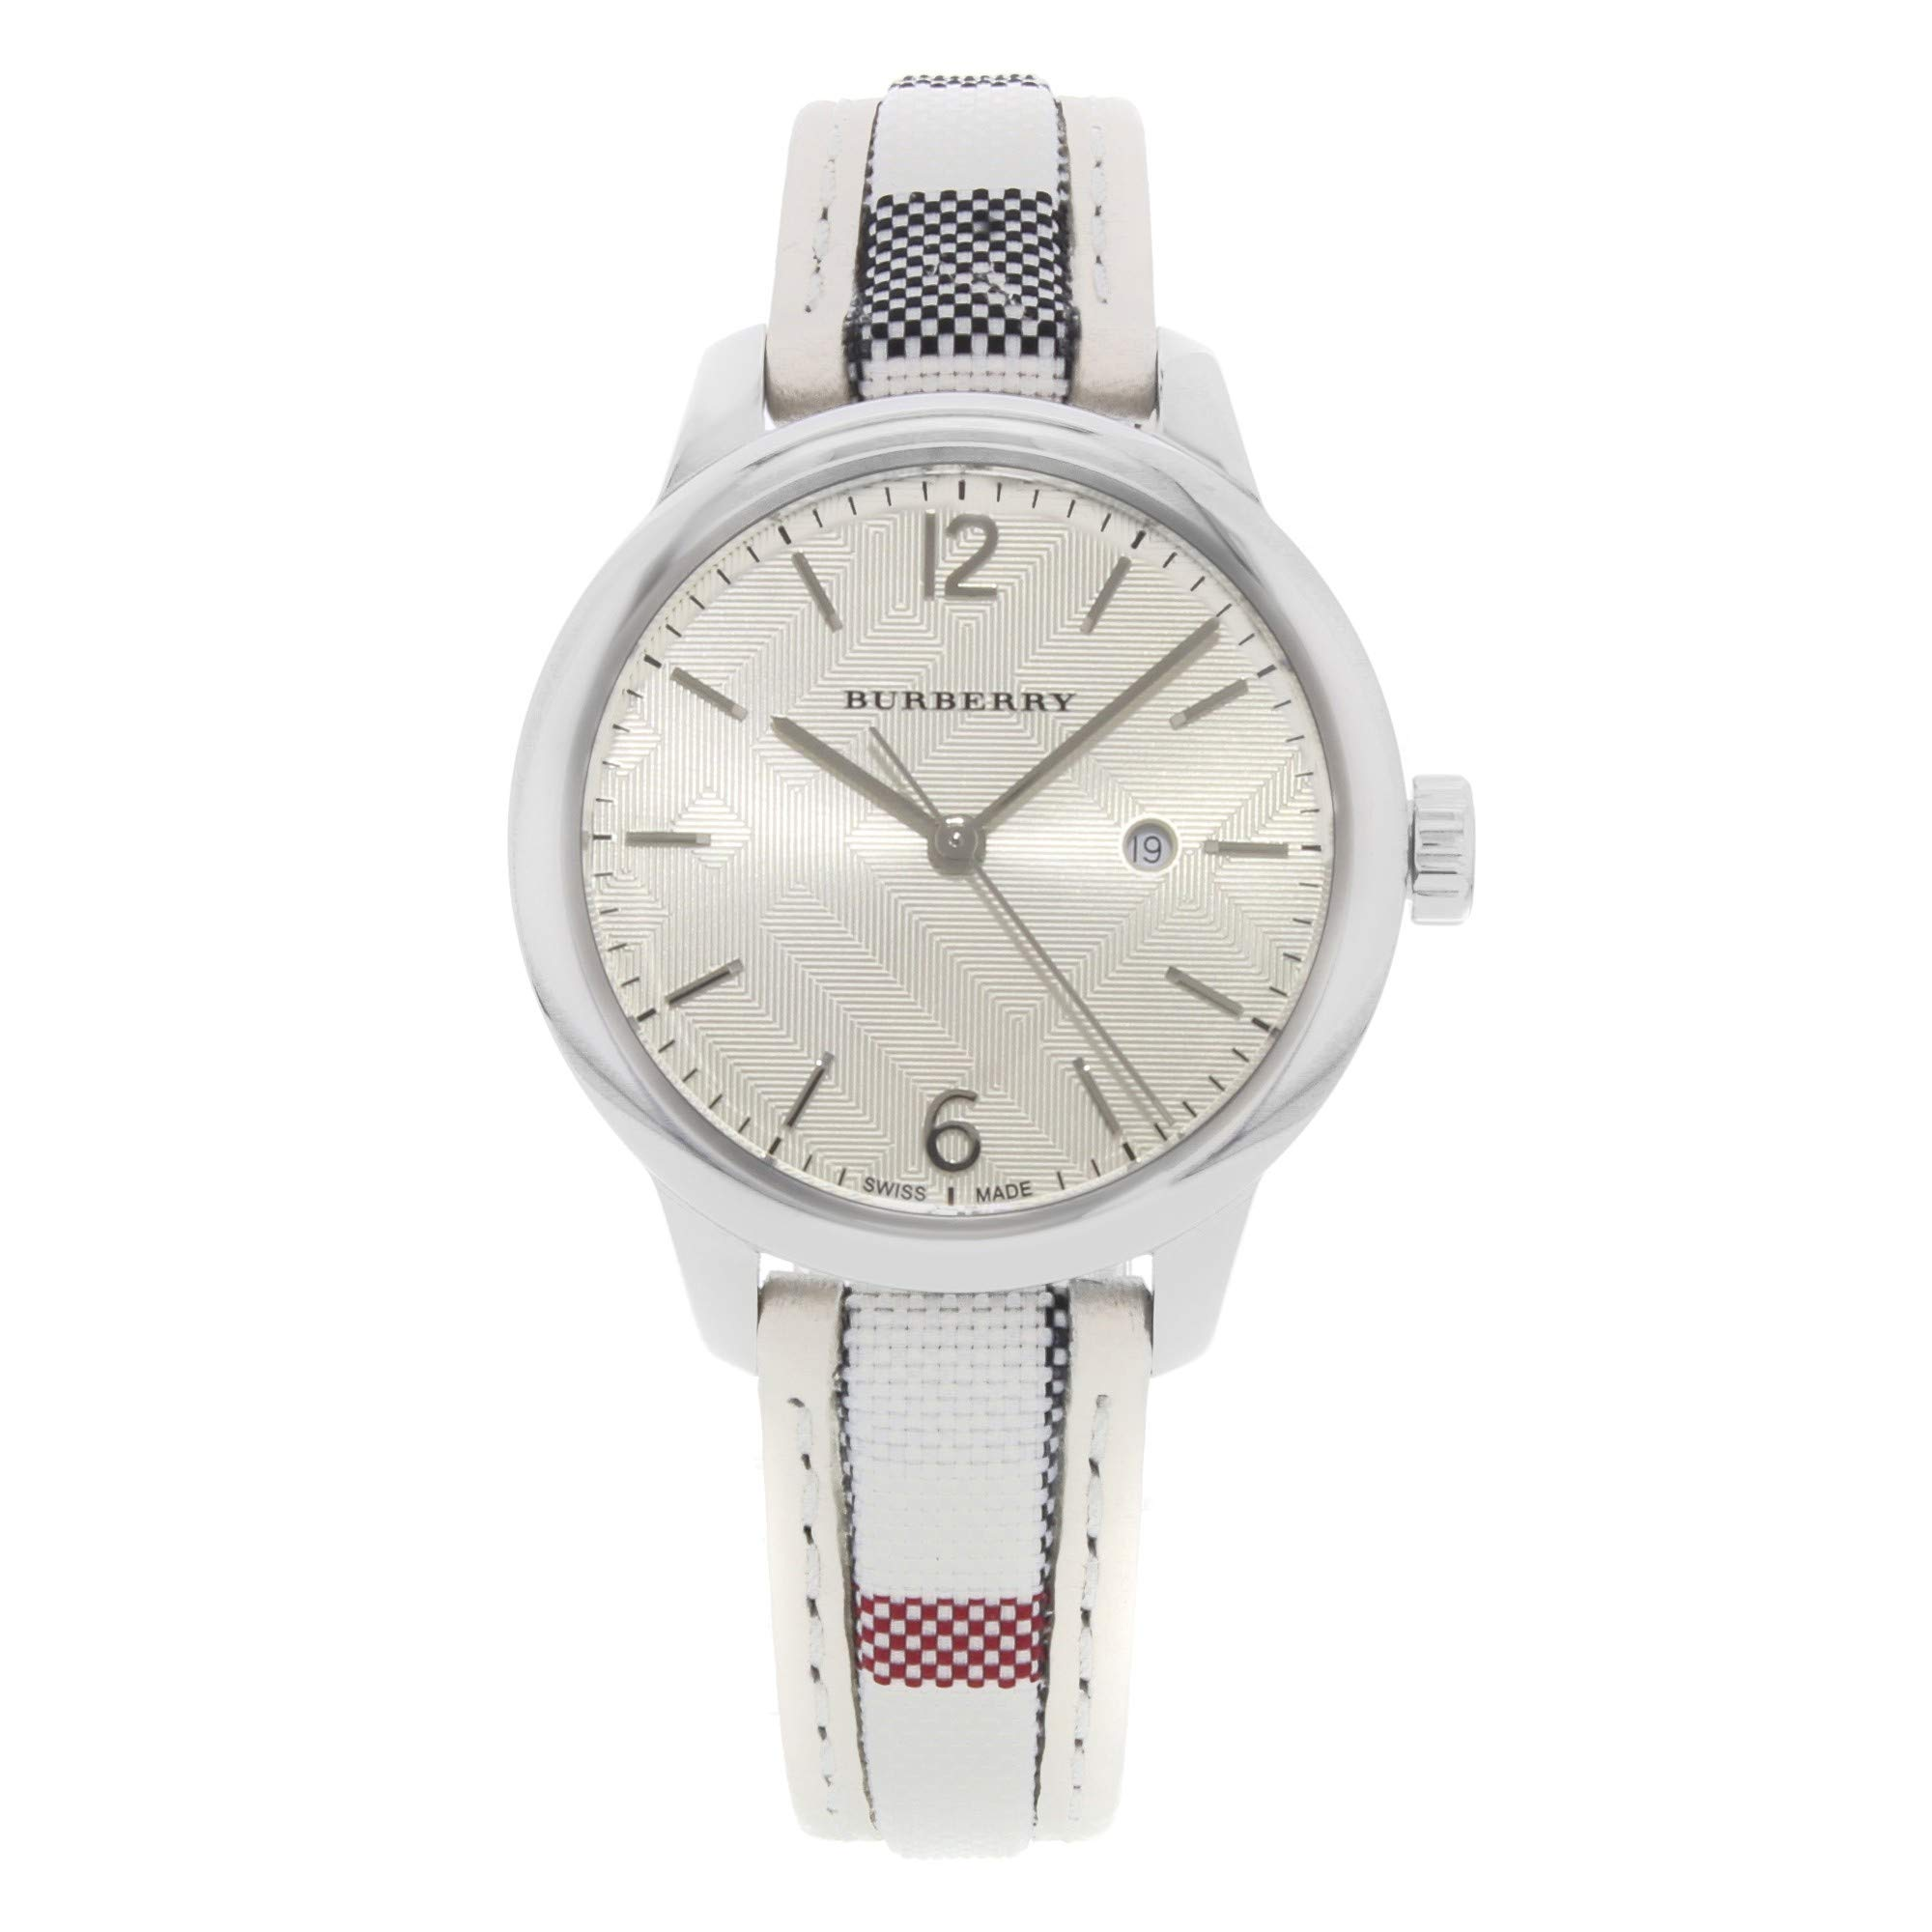 Burberry The Classic Round Quartz Female Watch BU10113 (Certified Pre-Owned) by BURBERRY